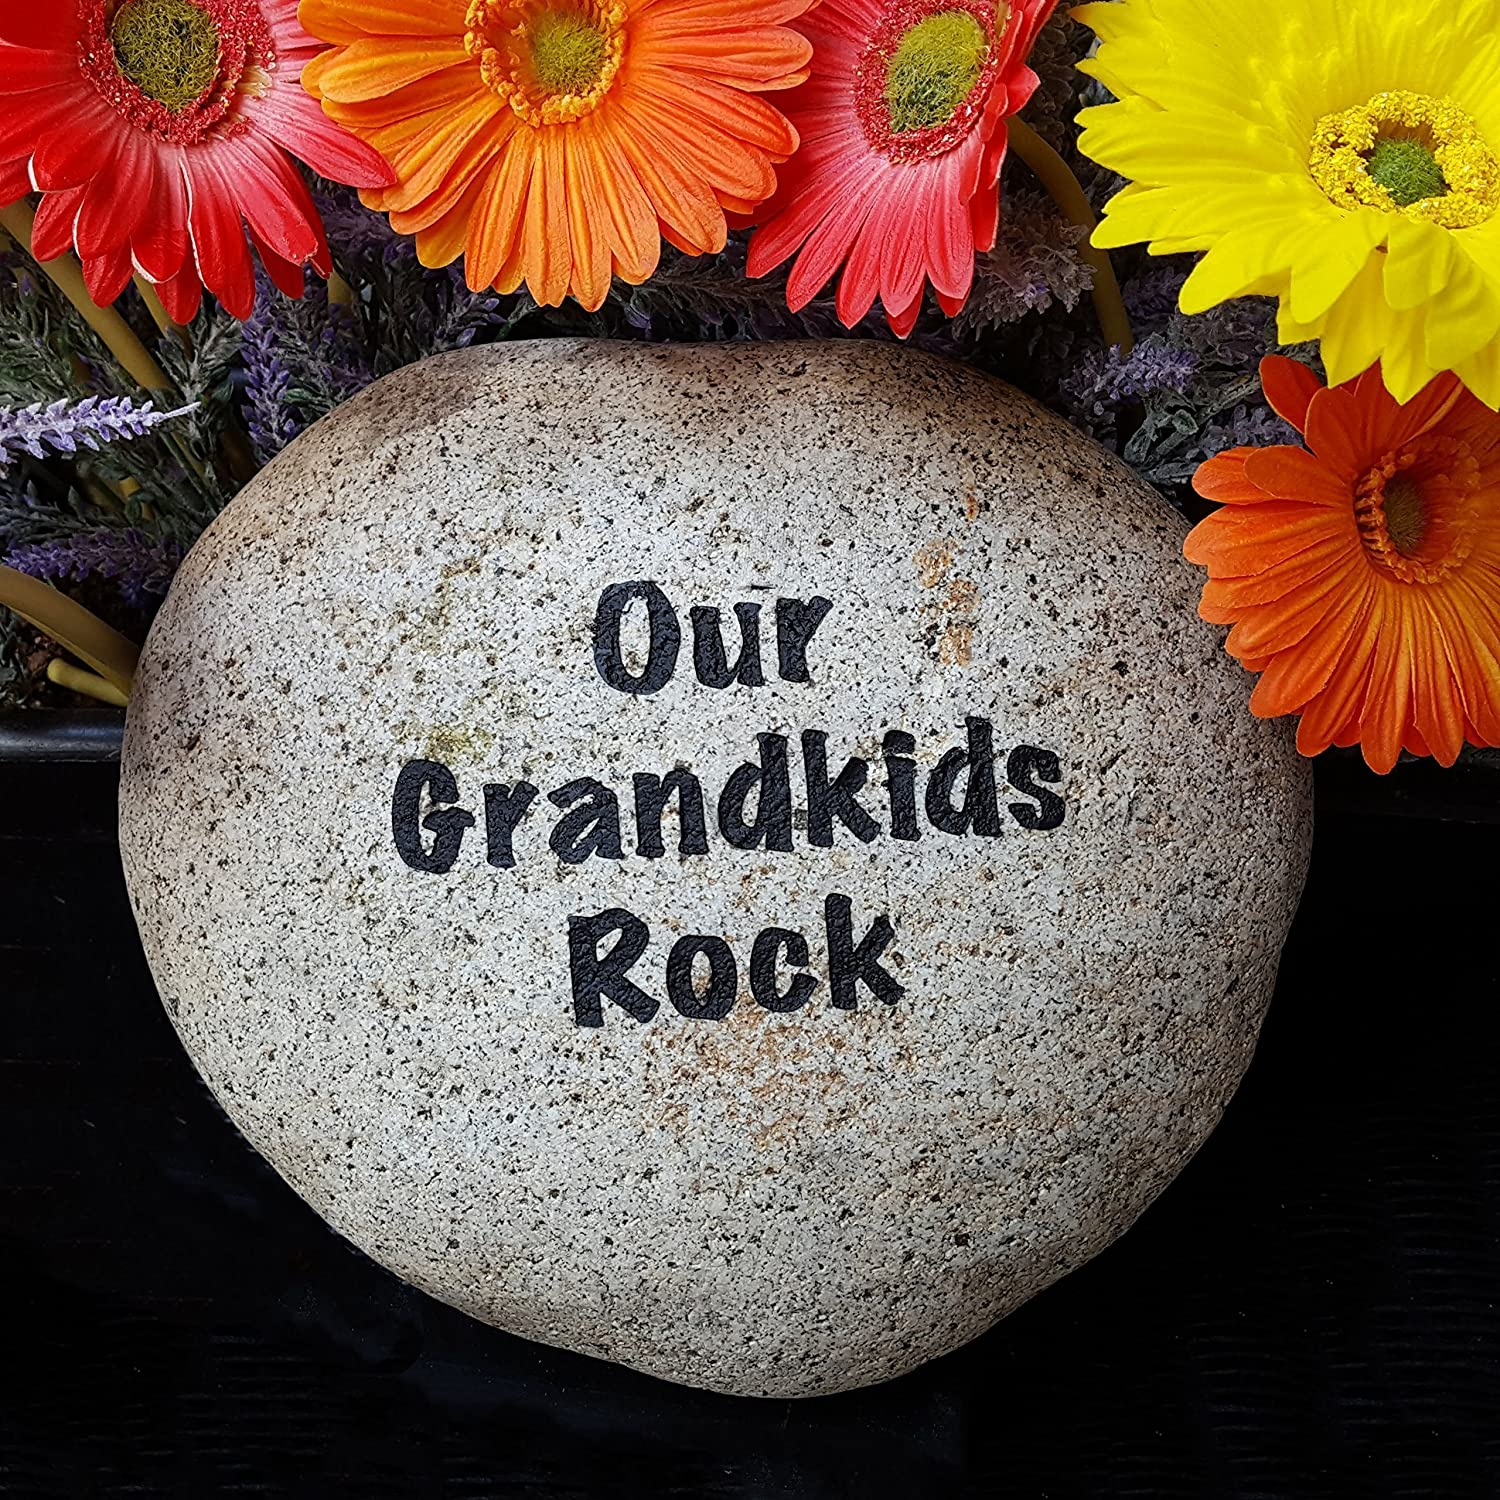 God Rocks Our Grandkids Rock Engraved Garden Stone